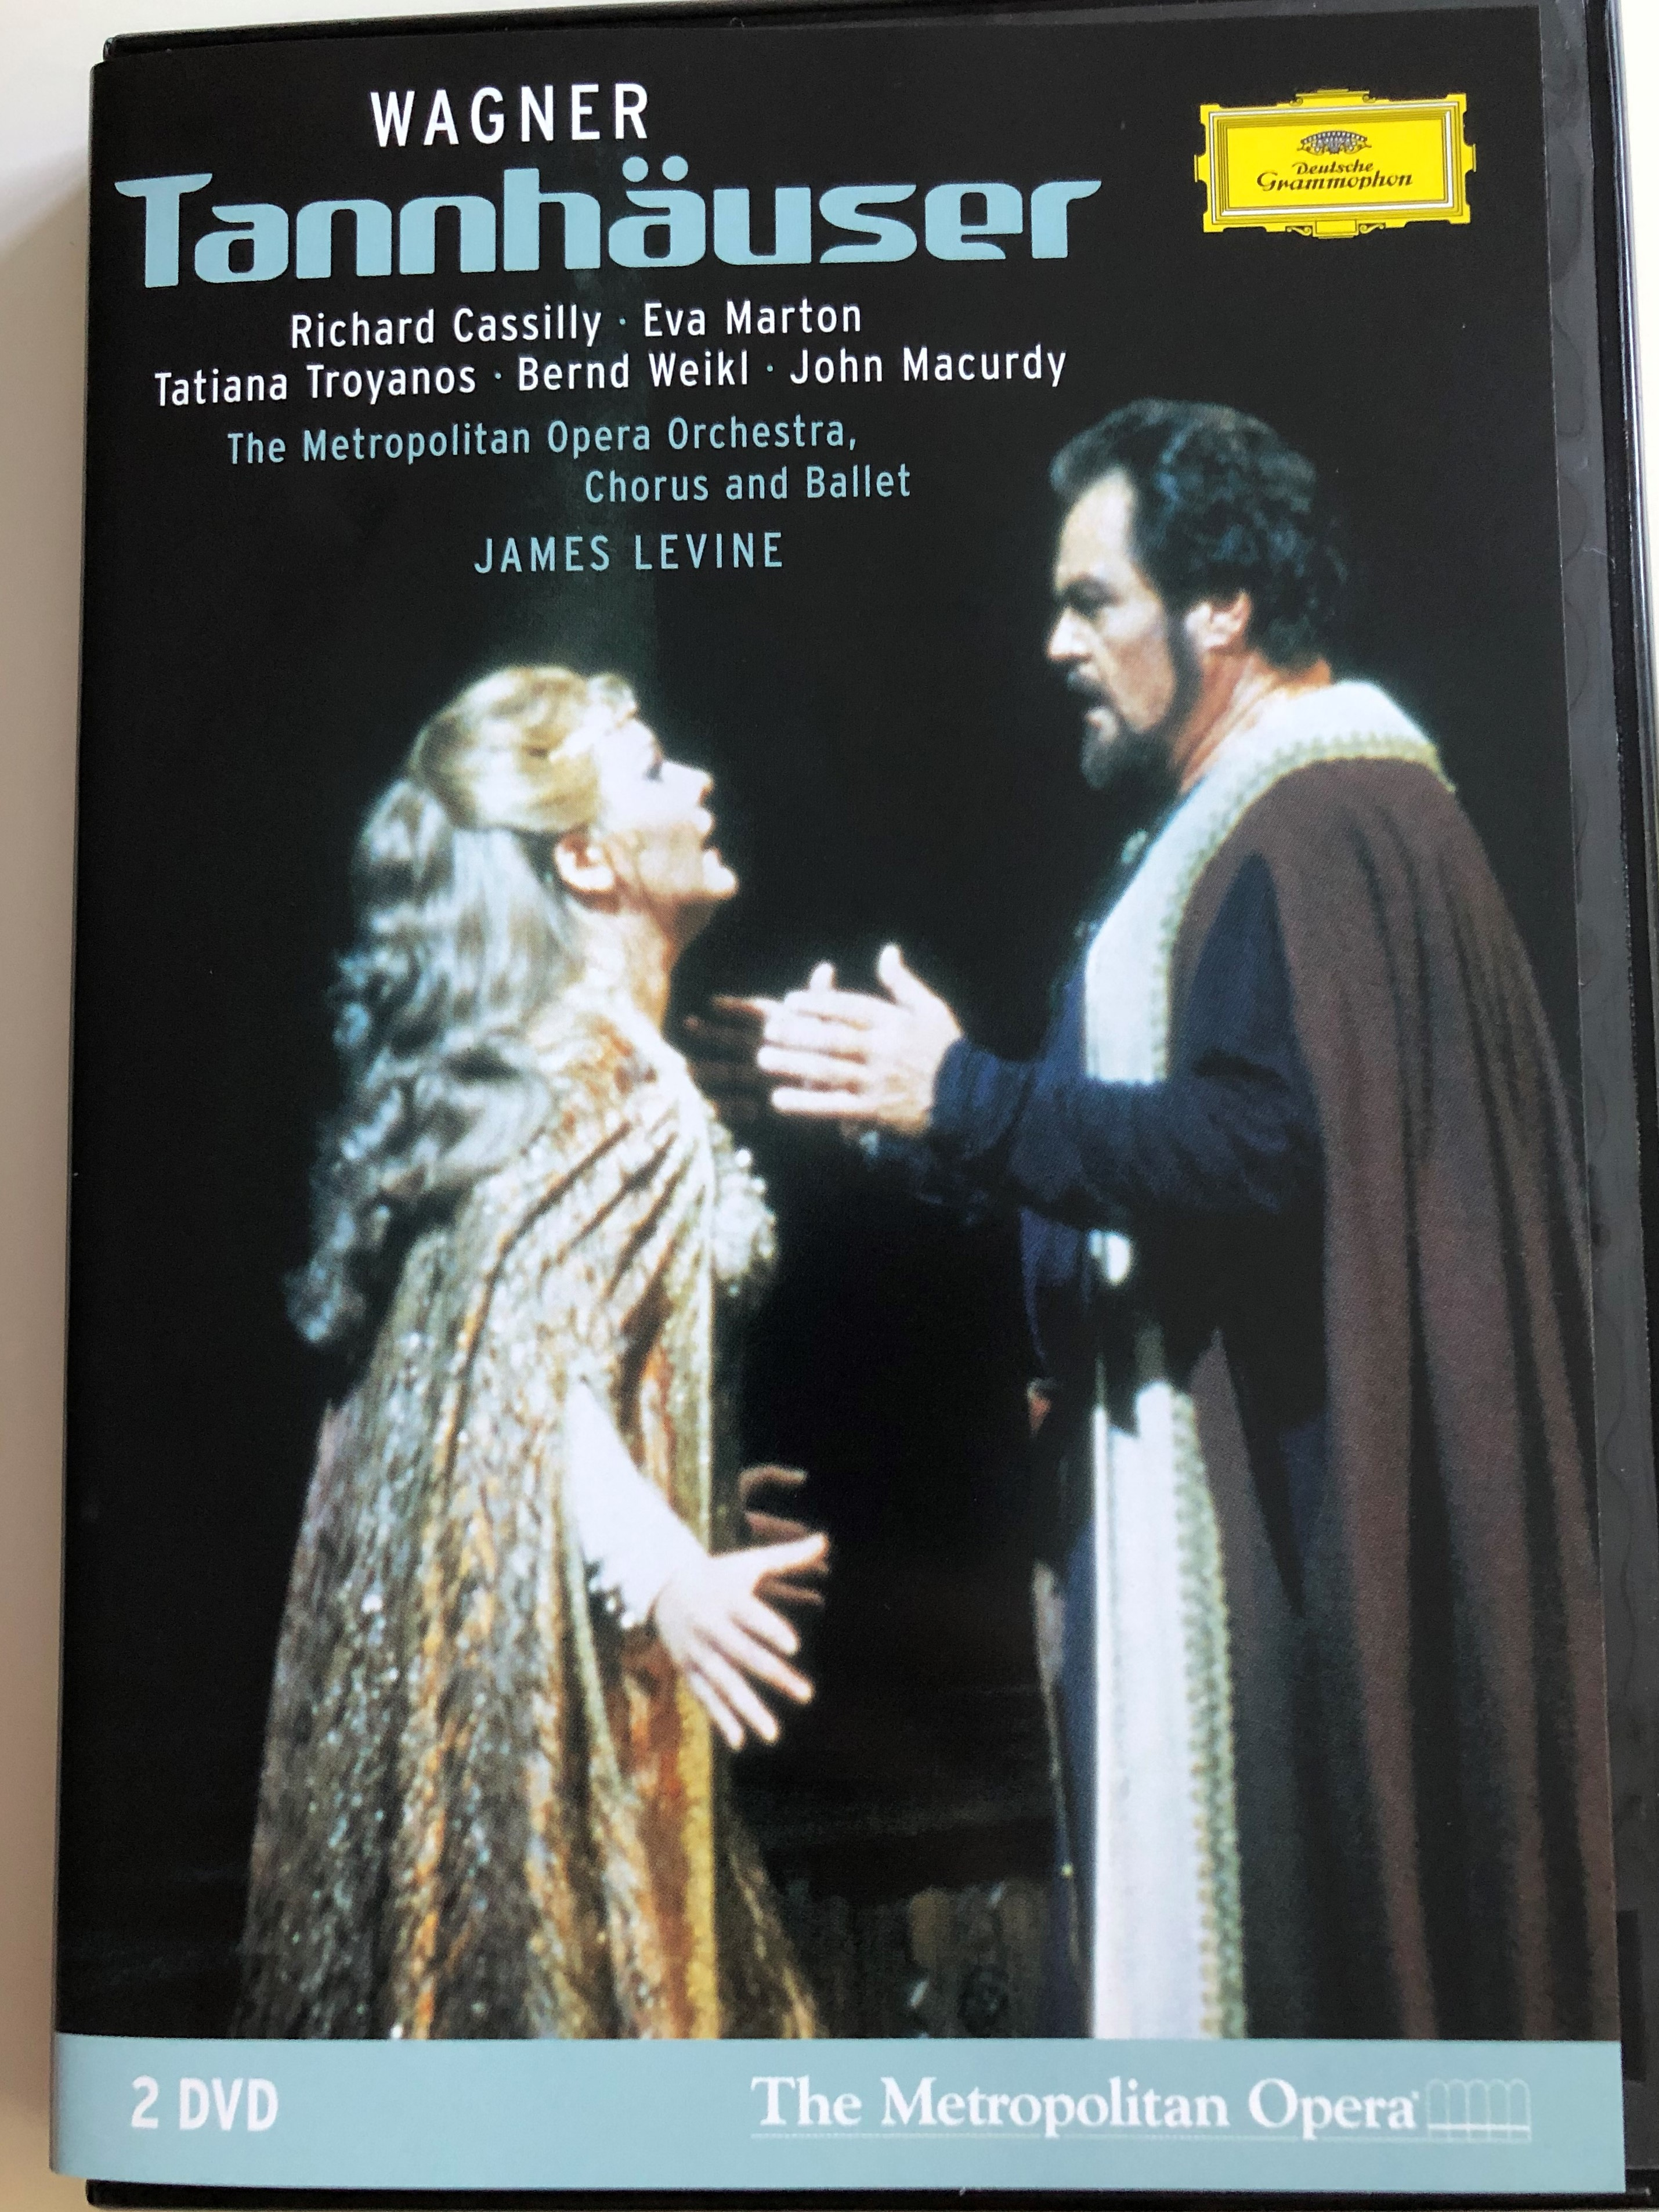 richard-wagner-tannh-user-2-dvd-2006-the-metropolitan-opera-orchestra-chorus-and-ballet-conducted-by-james-levine-richard-cassilly-eva-marton-tatiana-troyanos-bernd-weikl-john-macurdy-directed-for-video-by-brian-1-.jpg